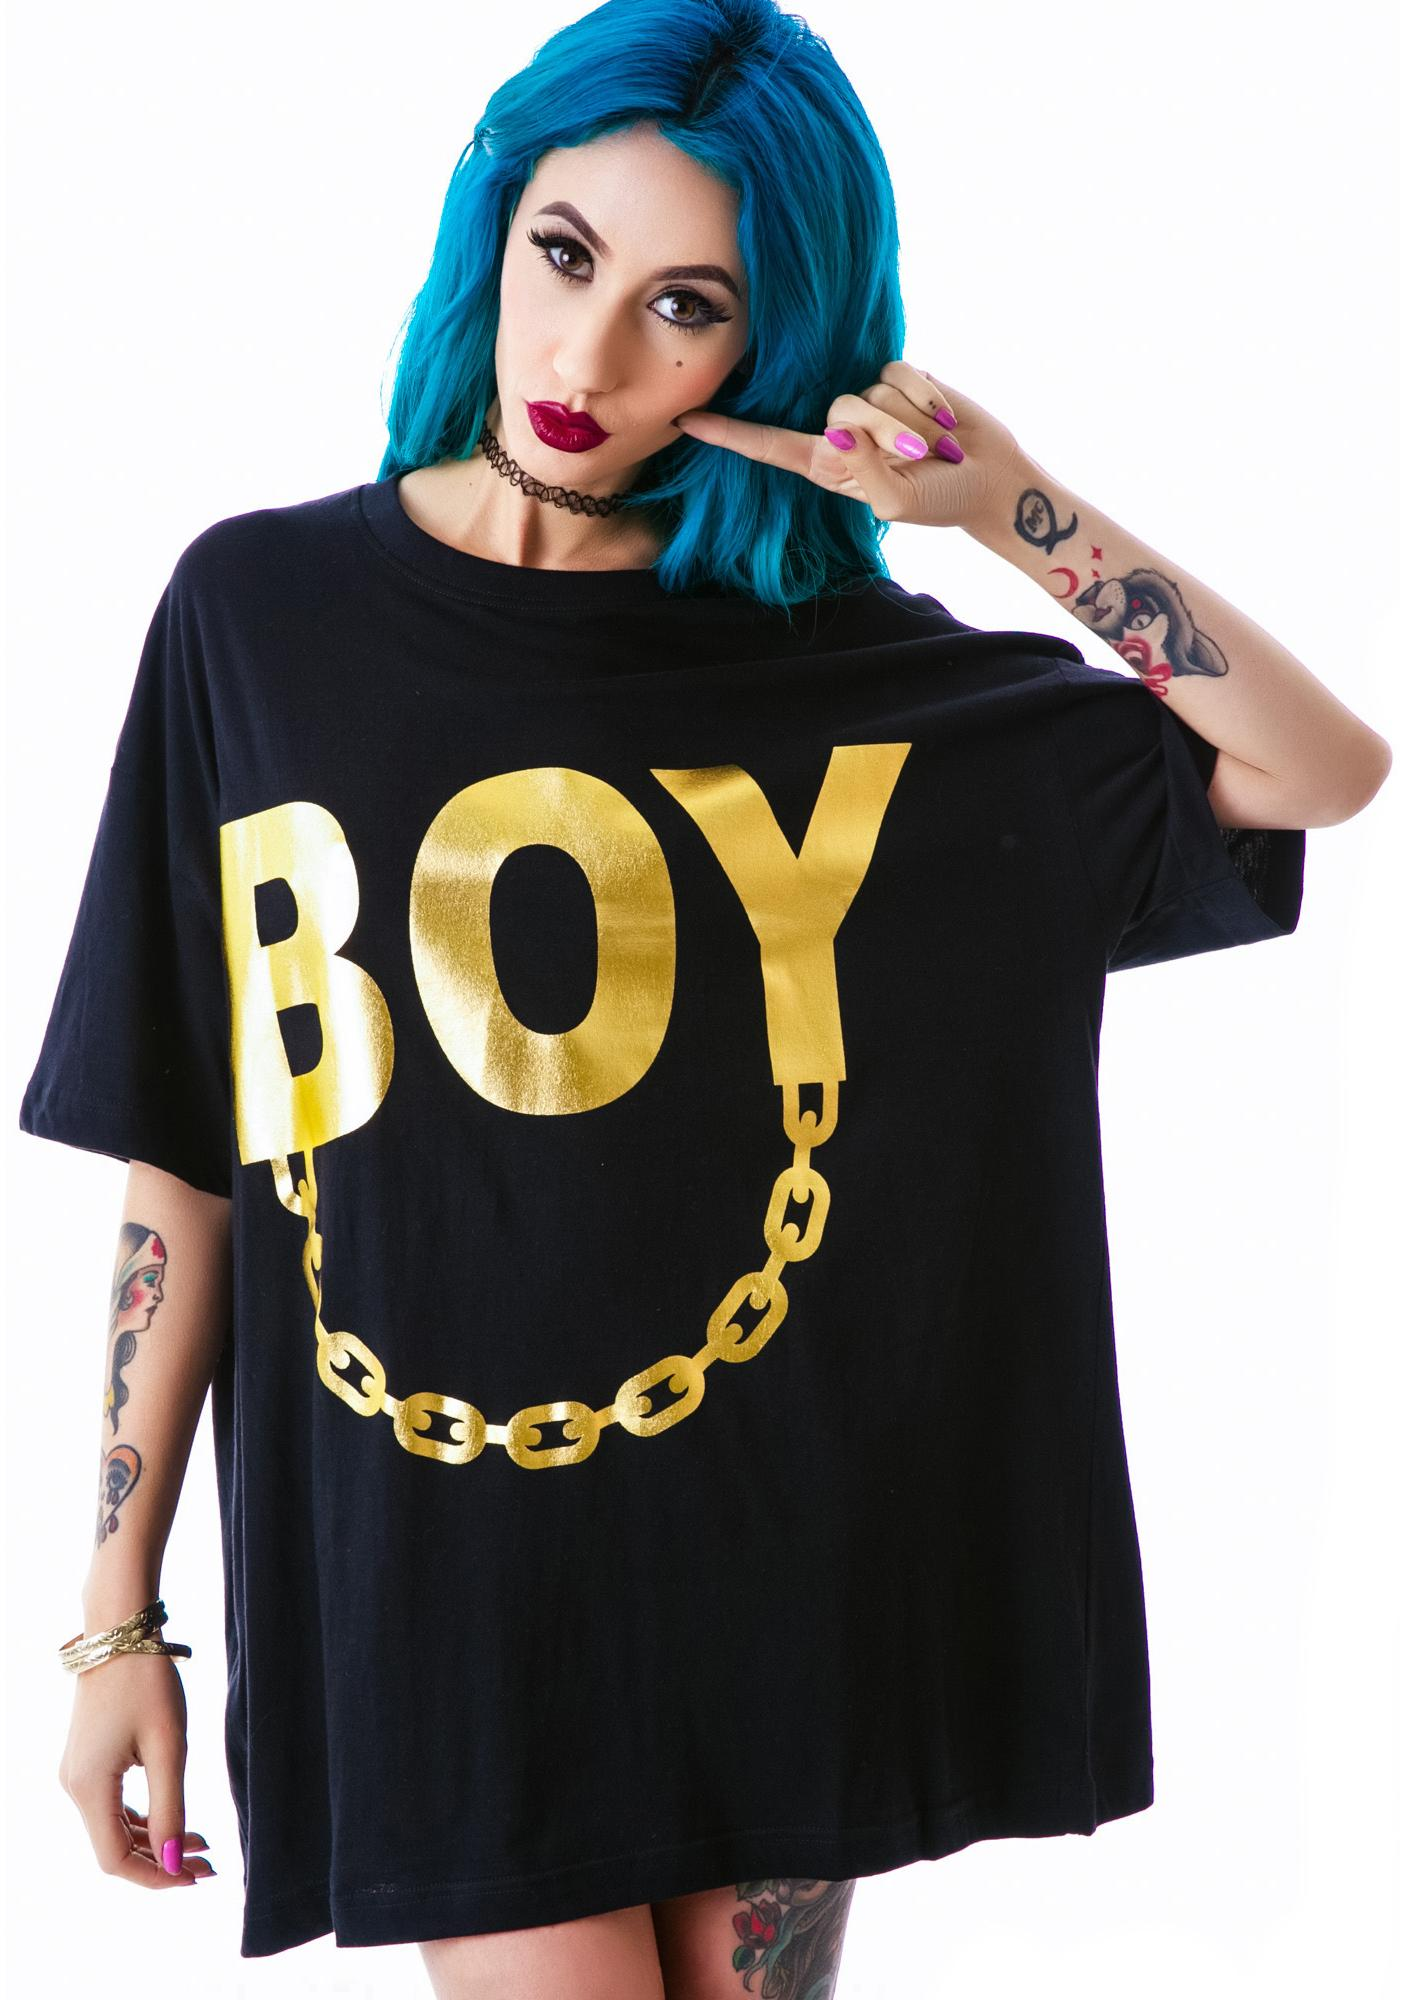 Long Clothing x BOY London Boy Chain Tee